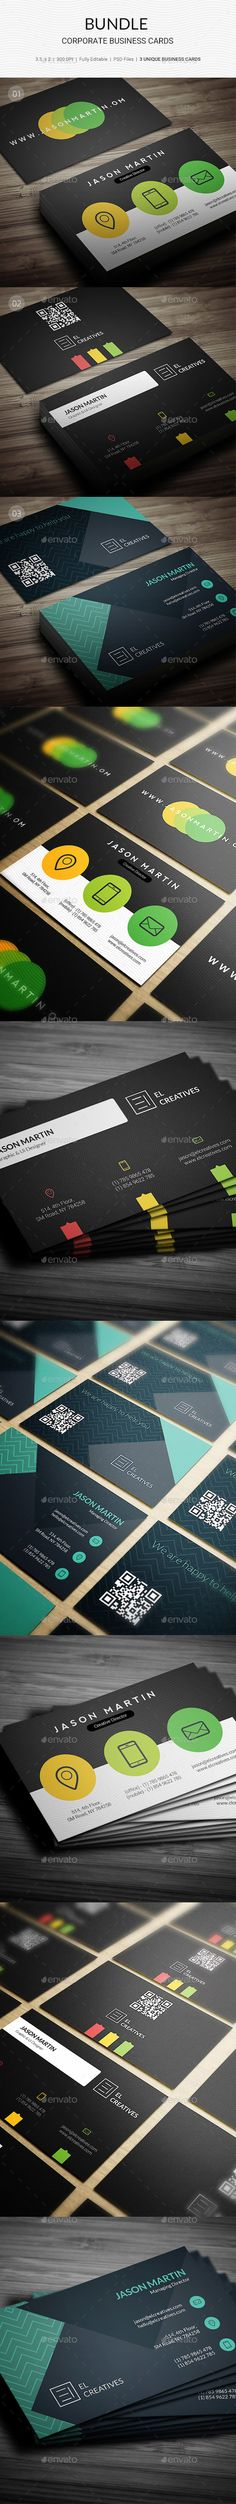 Bundle - Creative Business Card - 159 - Creative Business Cards Download here : https://graphicriver.net/item/bundle-creative-business-card-159/17645339?s_rank=47&ref=Al-fatih